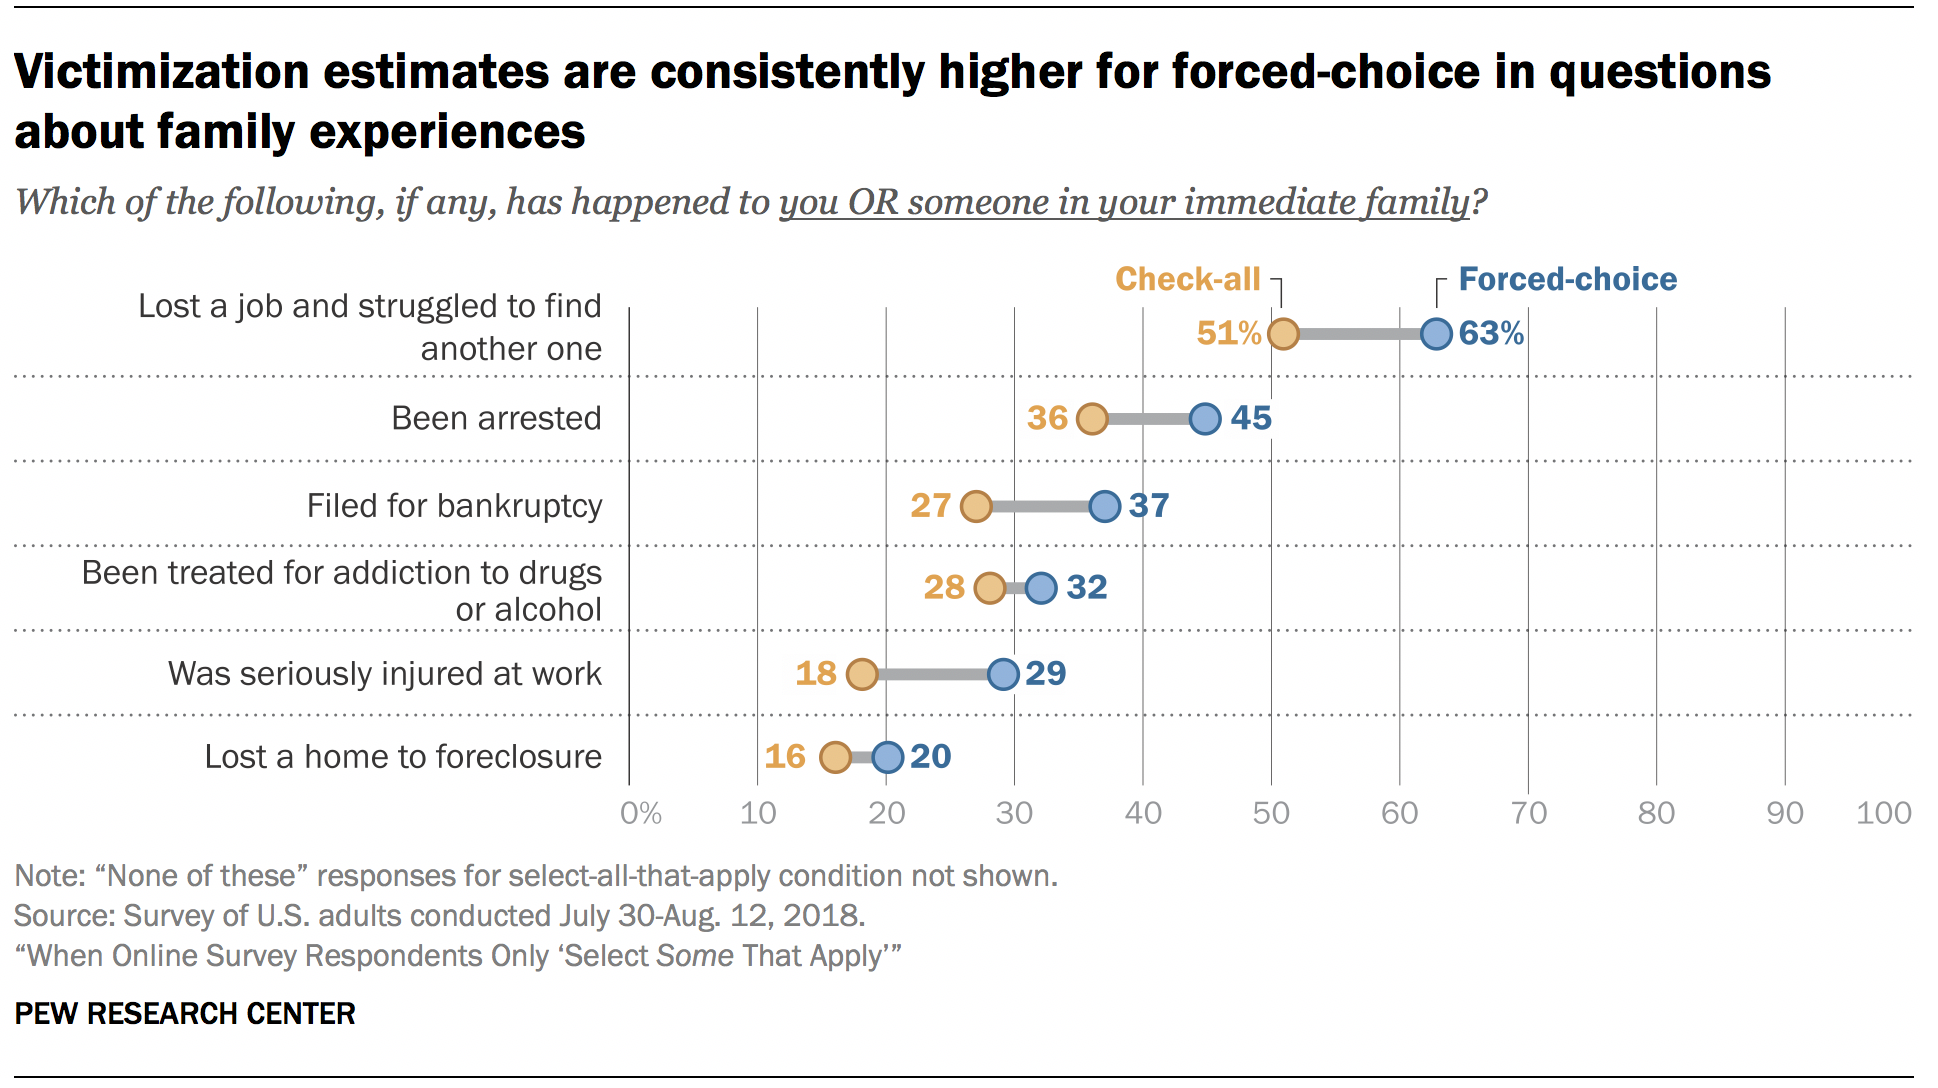 Victimization estimates are consistently higher for forced-choice in questions about family experiences